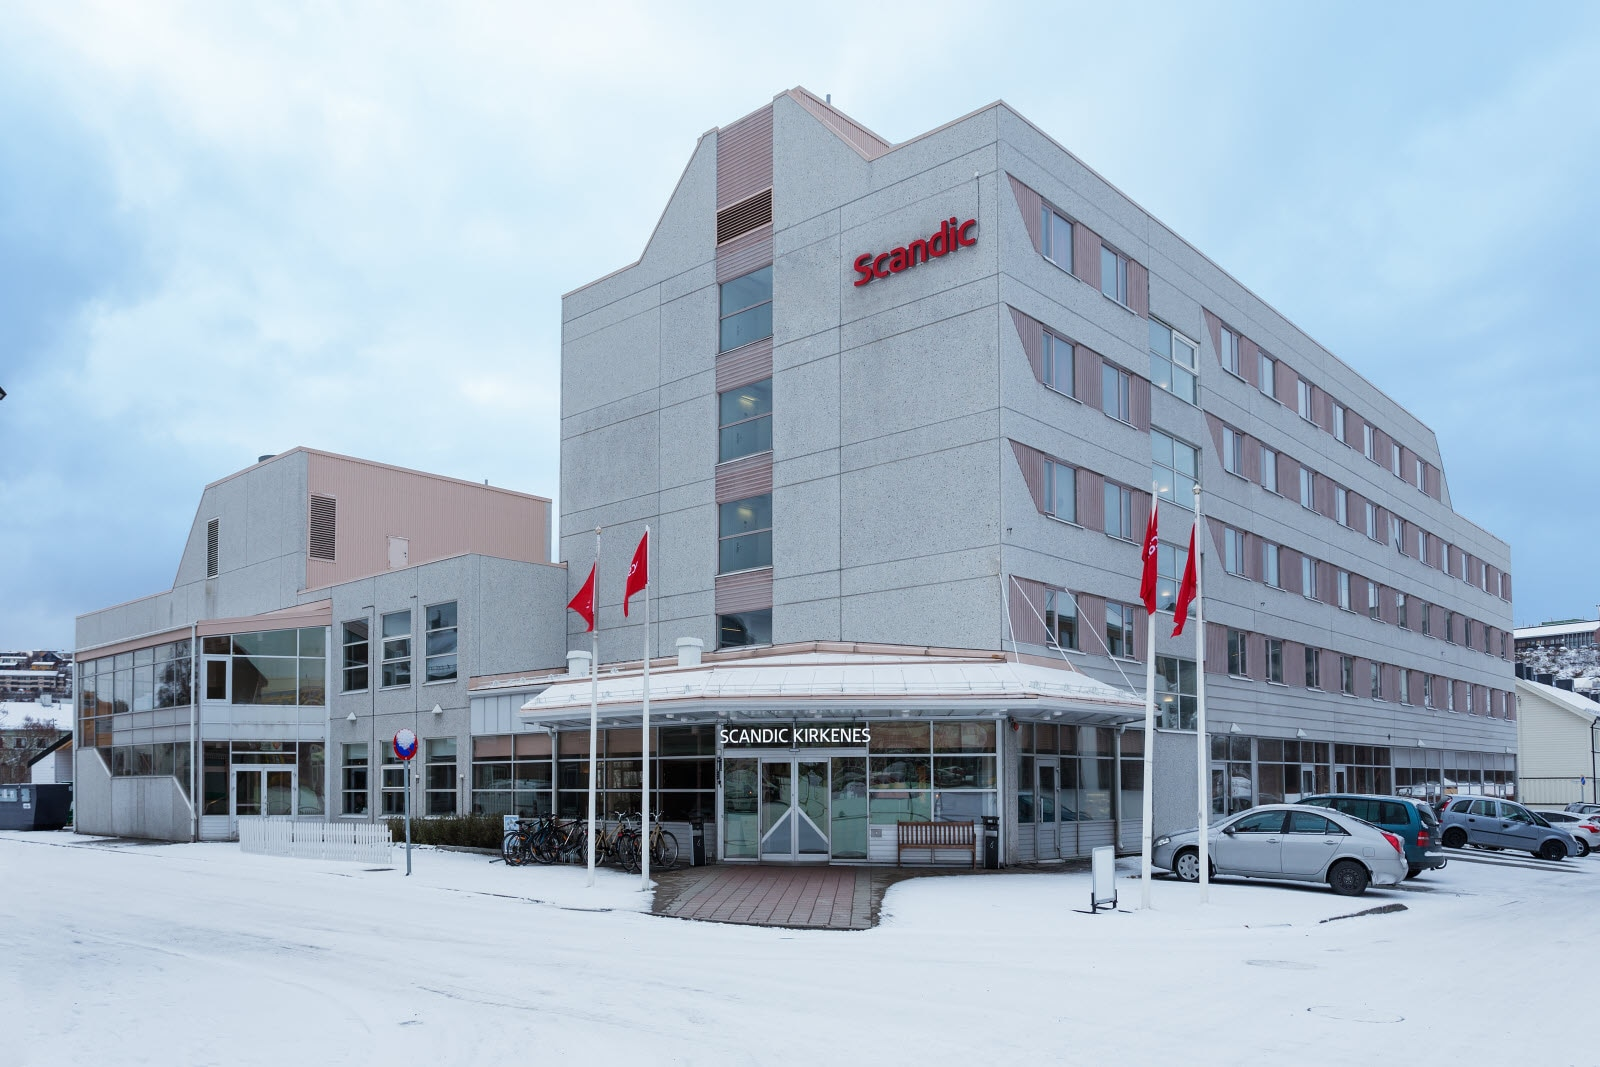 Hotelletfasade,